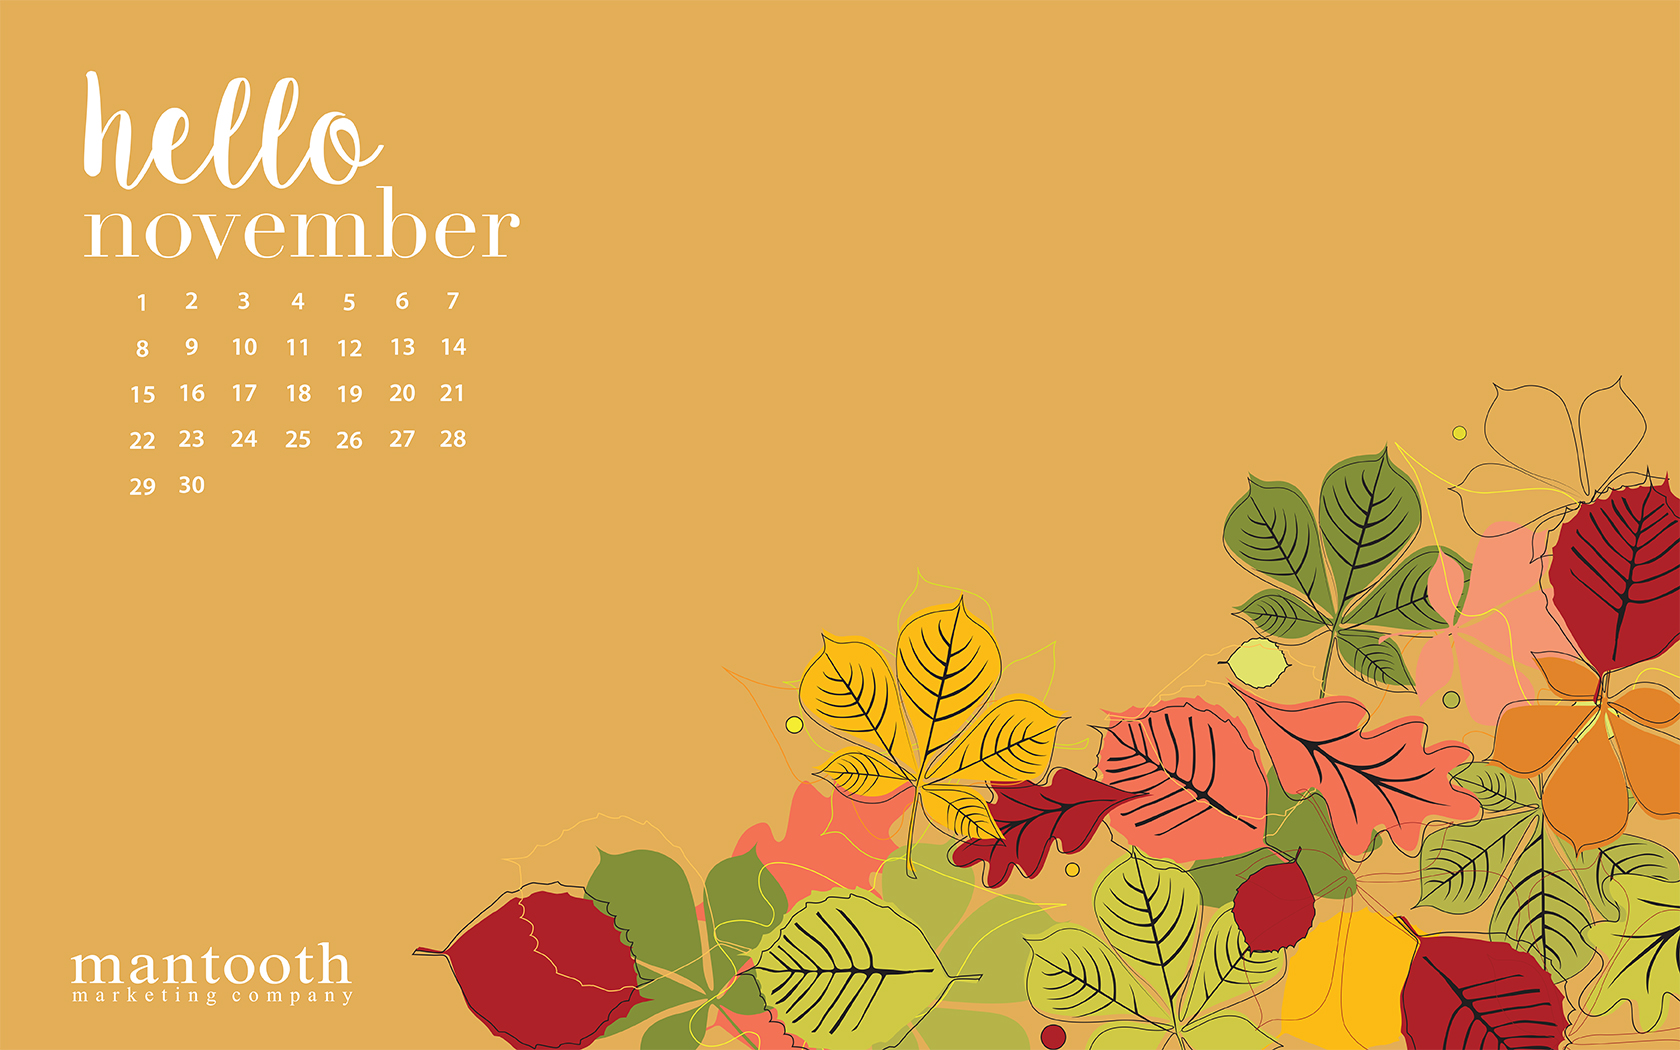 Free Desktop Calendar Wallpaper November : Free november wallpaper for desktop wallpapersafari